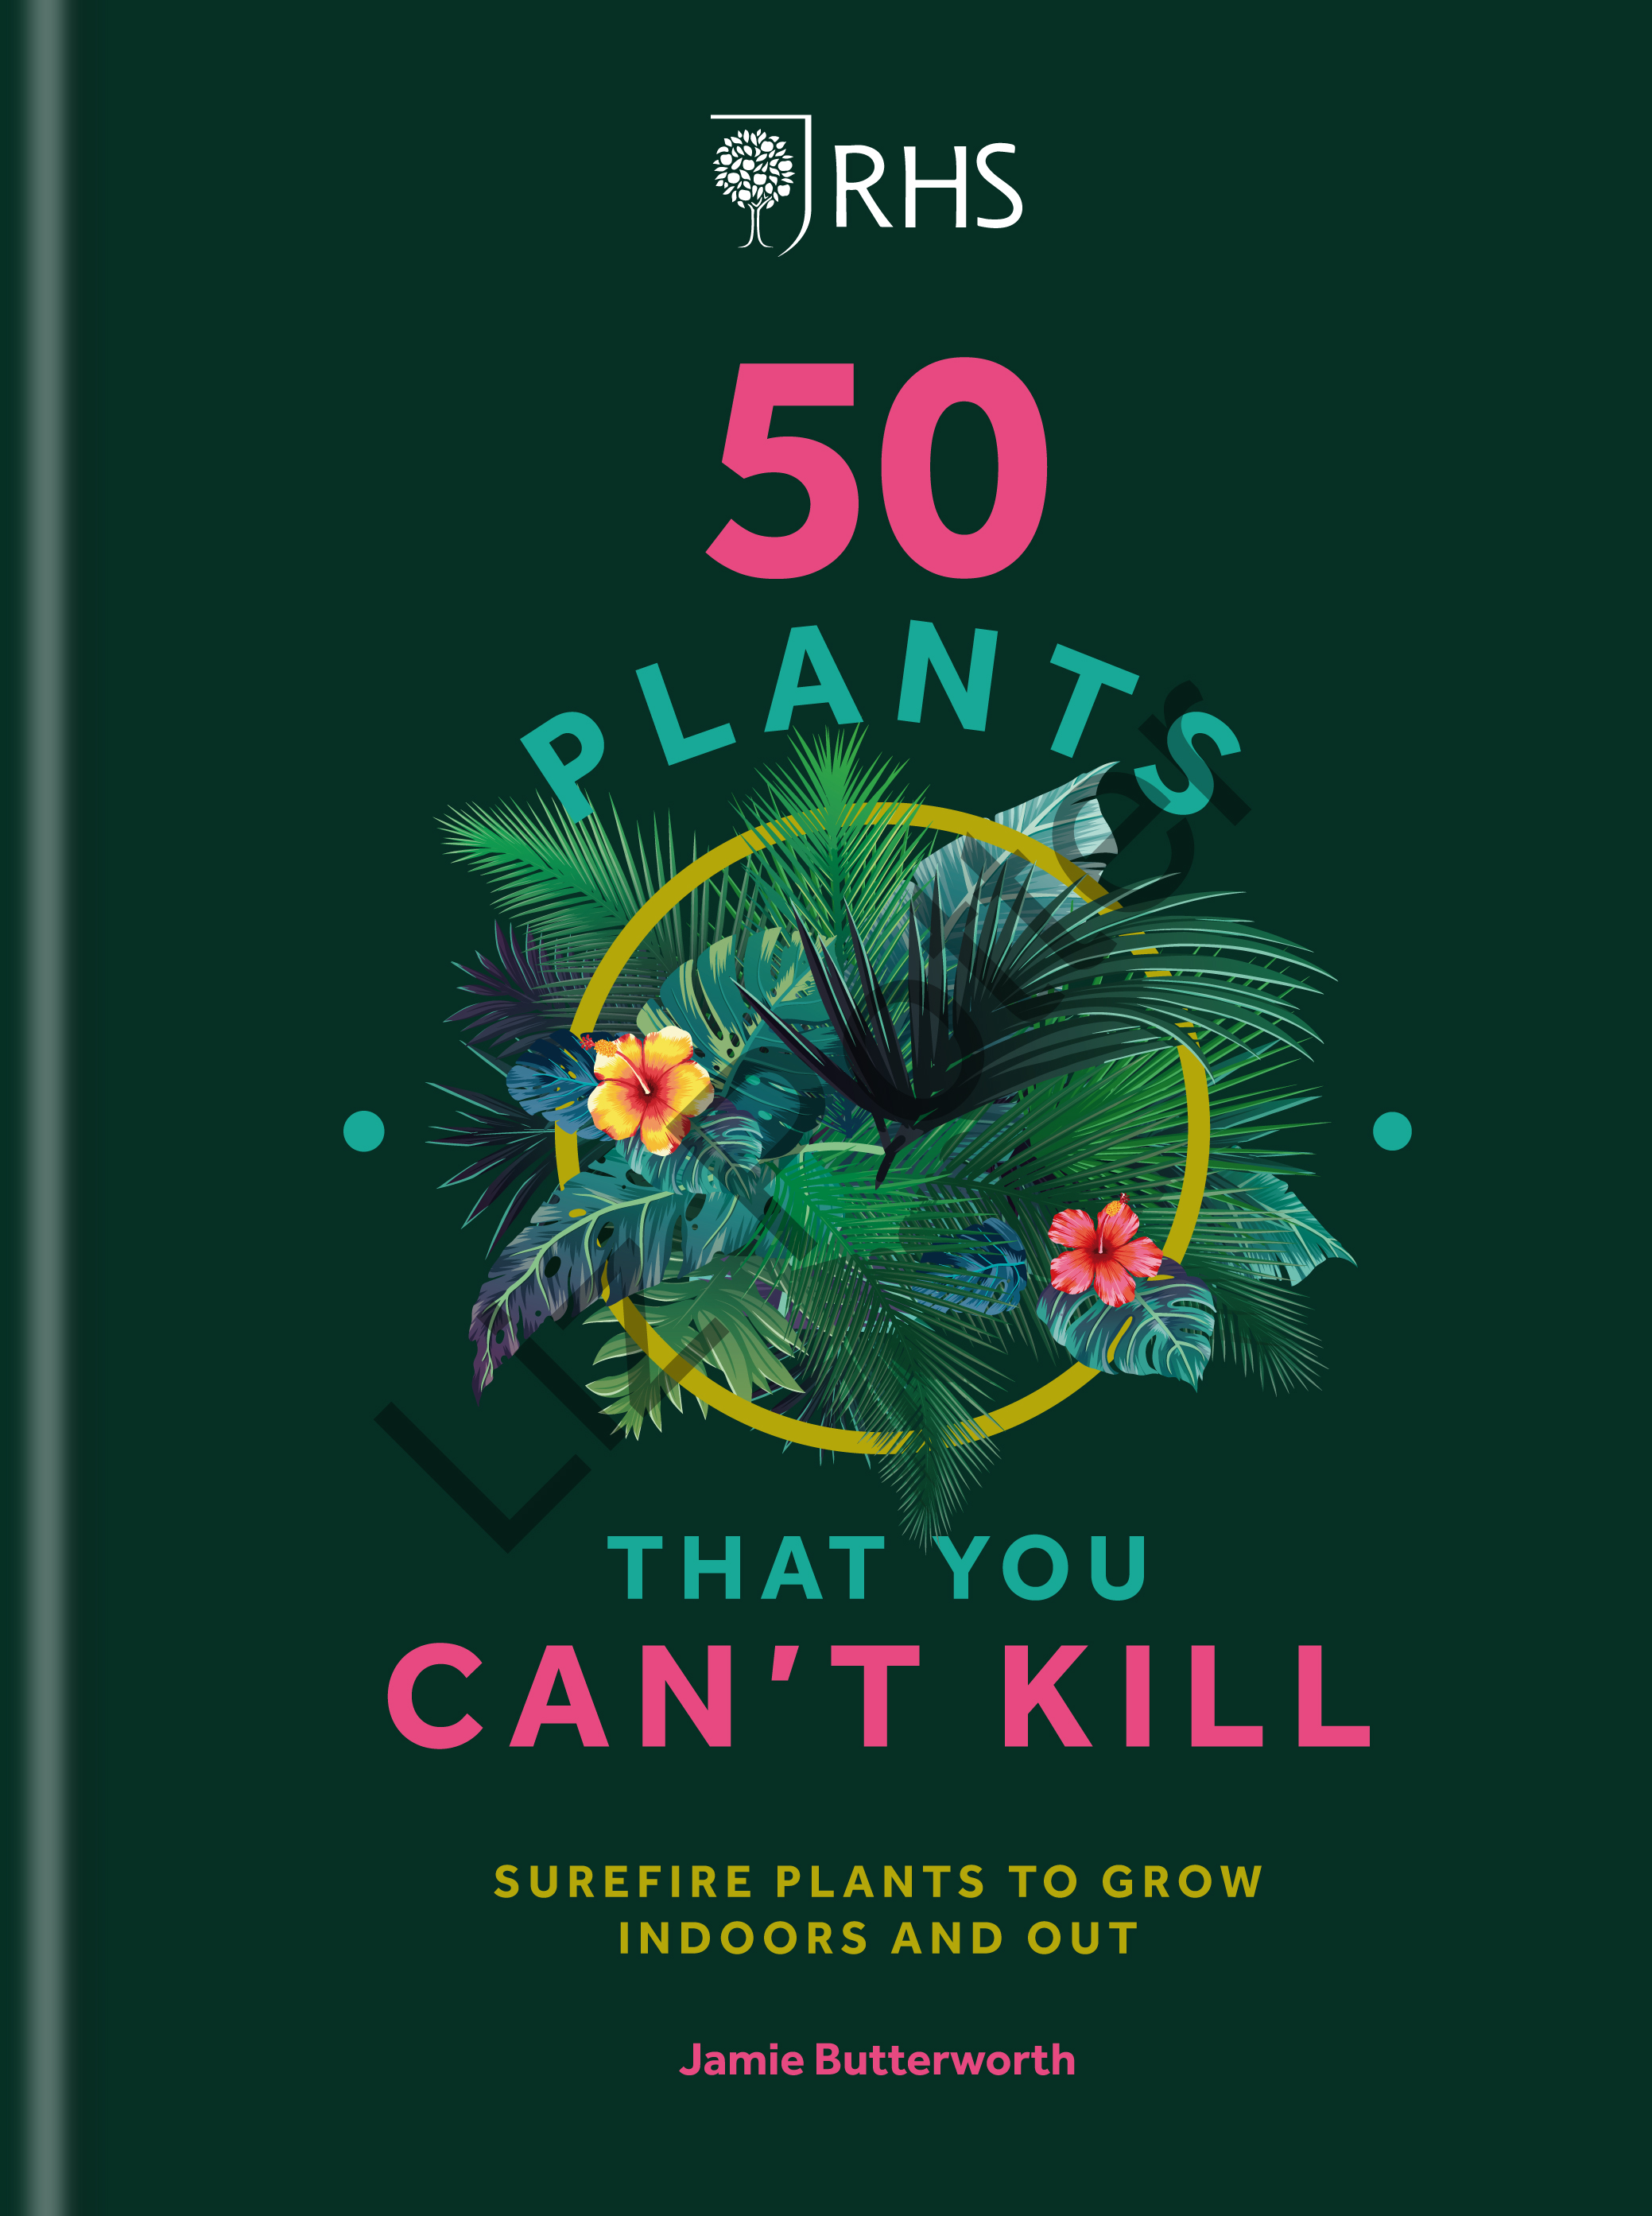 RHS-50 Plant That You Can't Kill cover.jpg